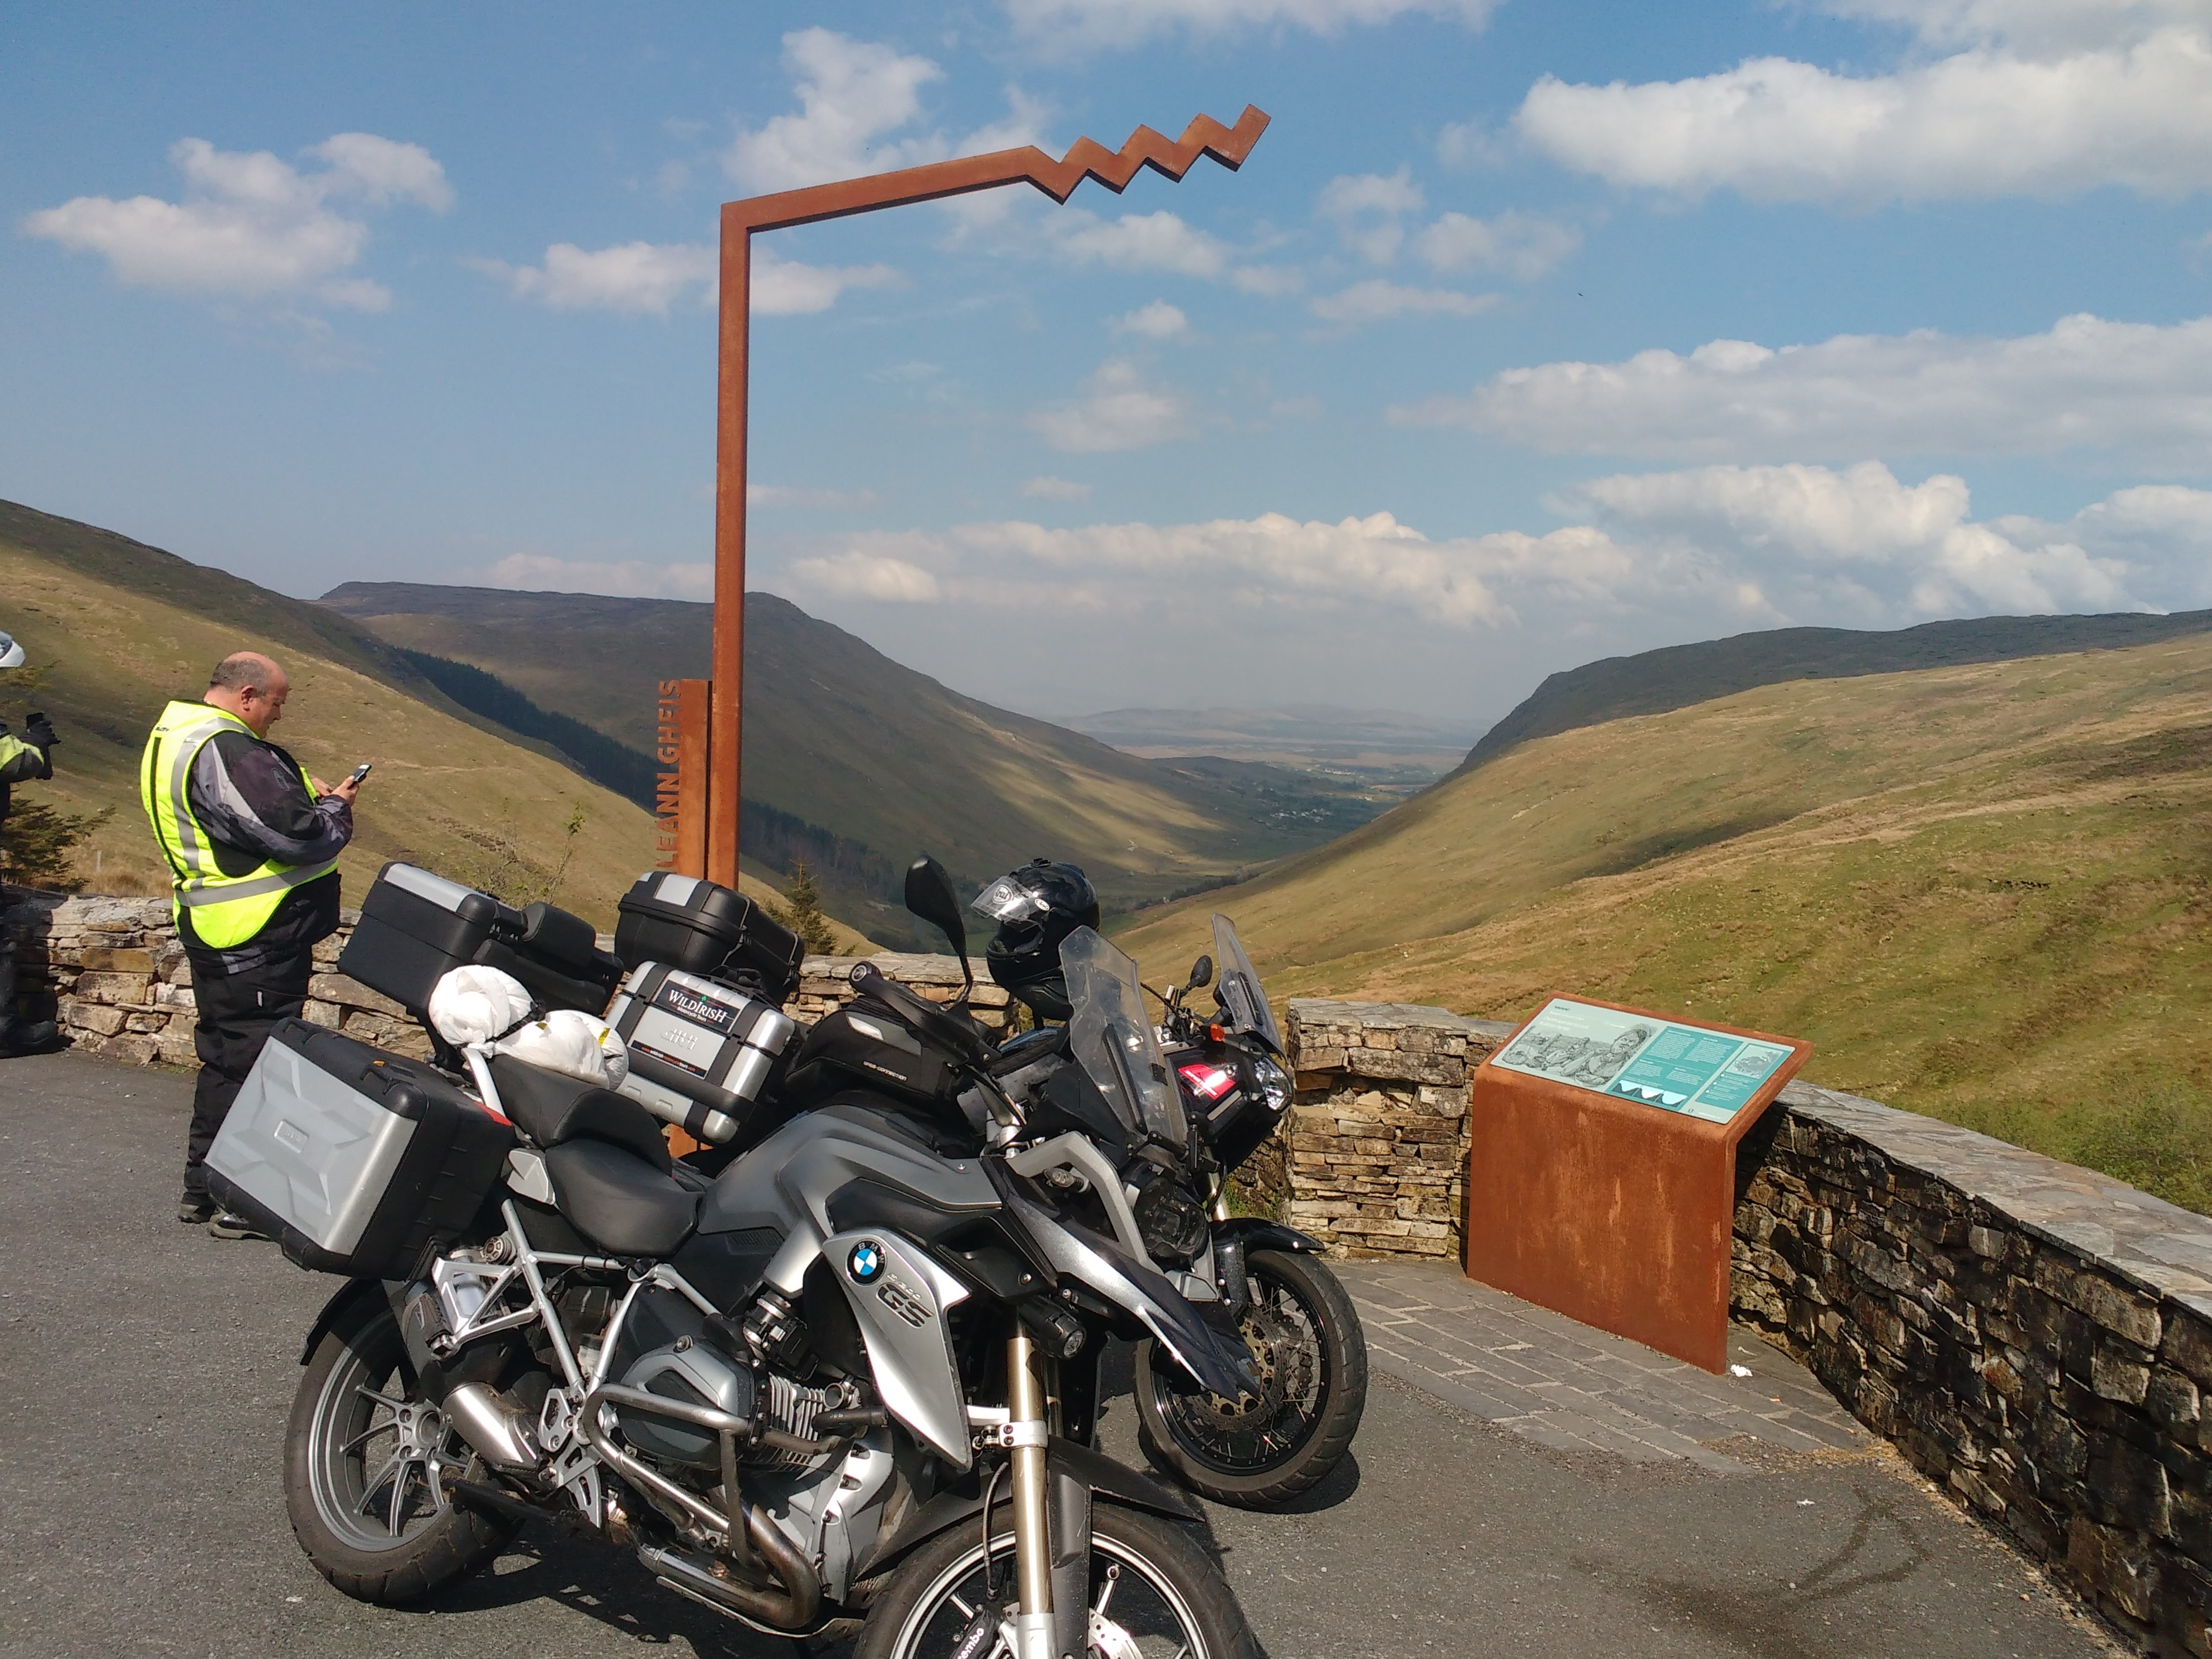 WILDIRISH Motorcycle Tours of Ireland - Glengesh Pass, Co. Donegal